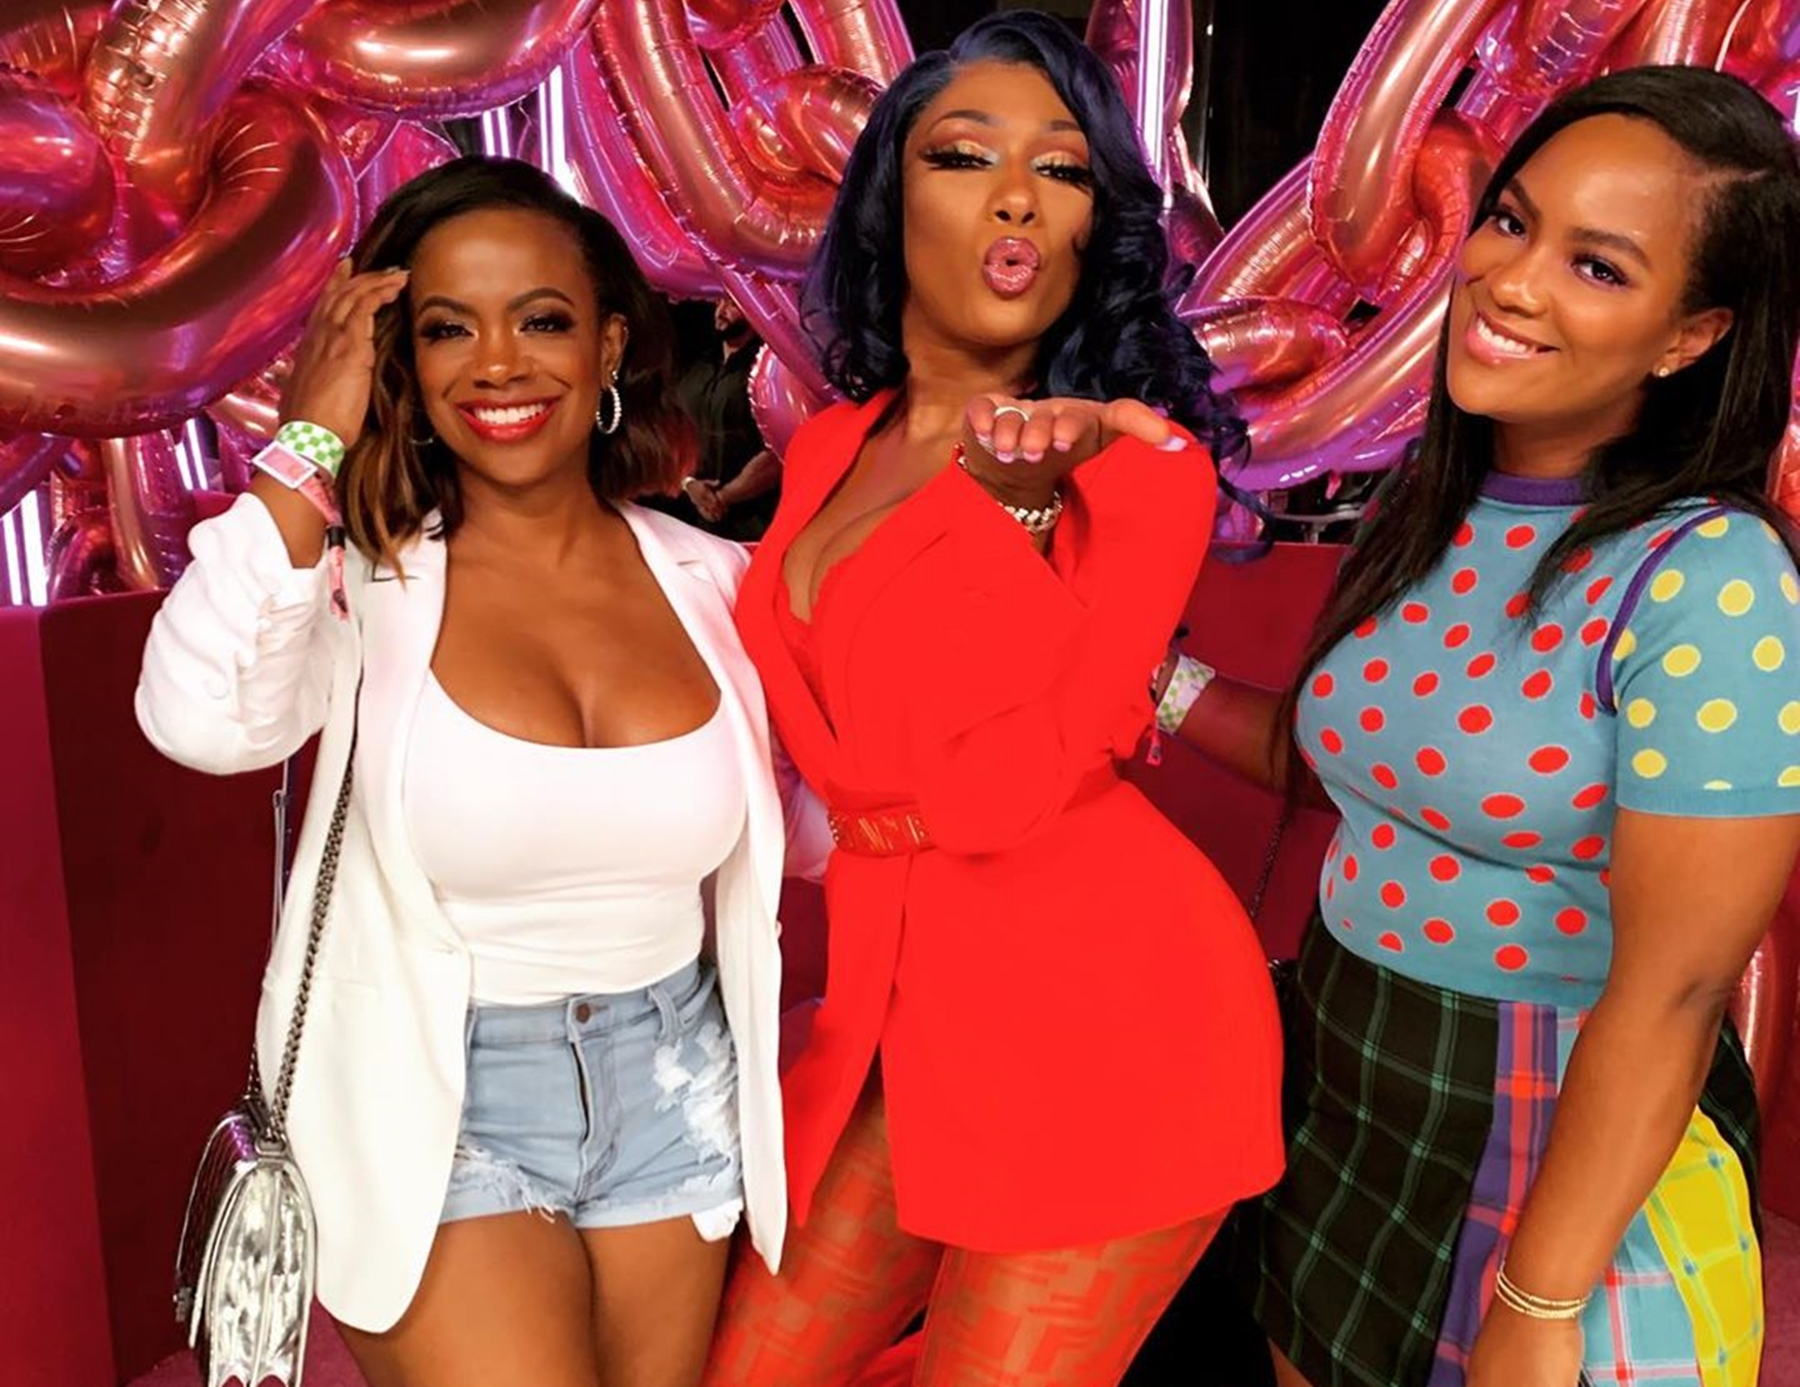 """kandi-burruss-gives-the-scoop-on-explosive-fights-and-nene-leakes-transformation-on-new-season-of-real-housewives-of-atlanta"""